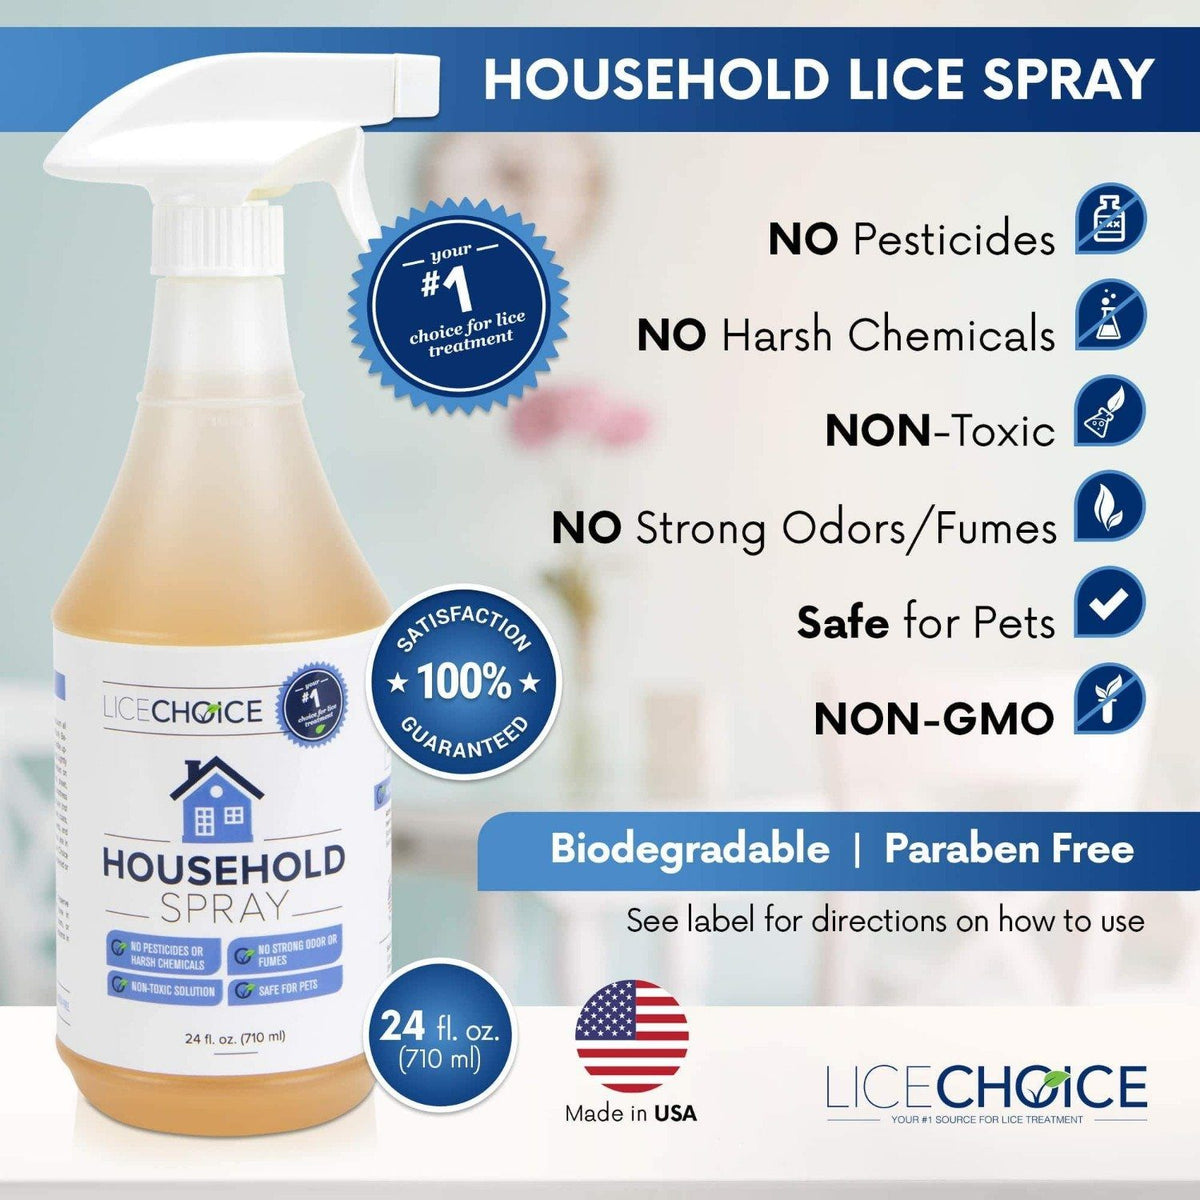 Lice Choice Household Treatment Spray which has no pesticides, no harsh chemicals, is non-toxic, and is safe for pets.